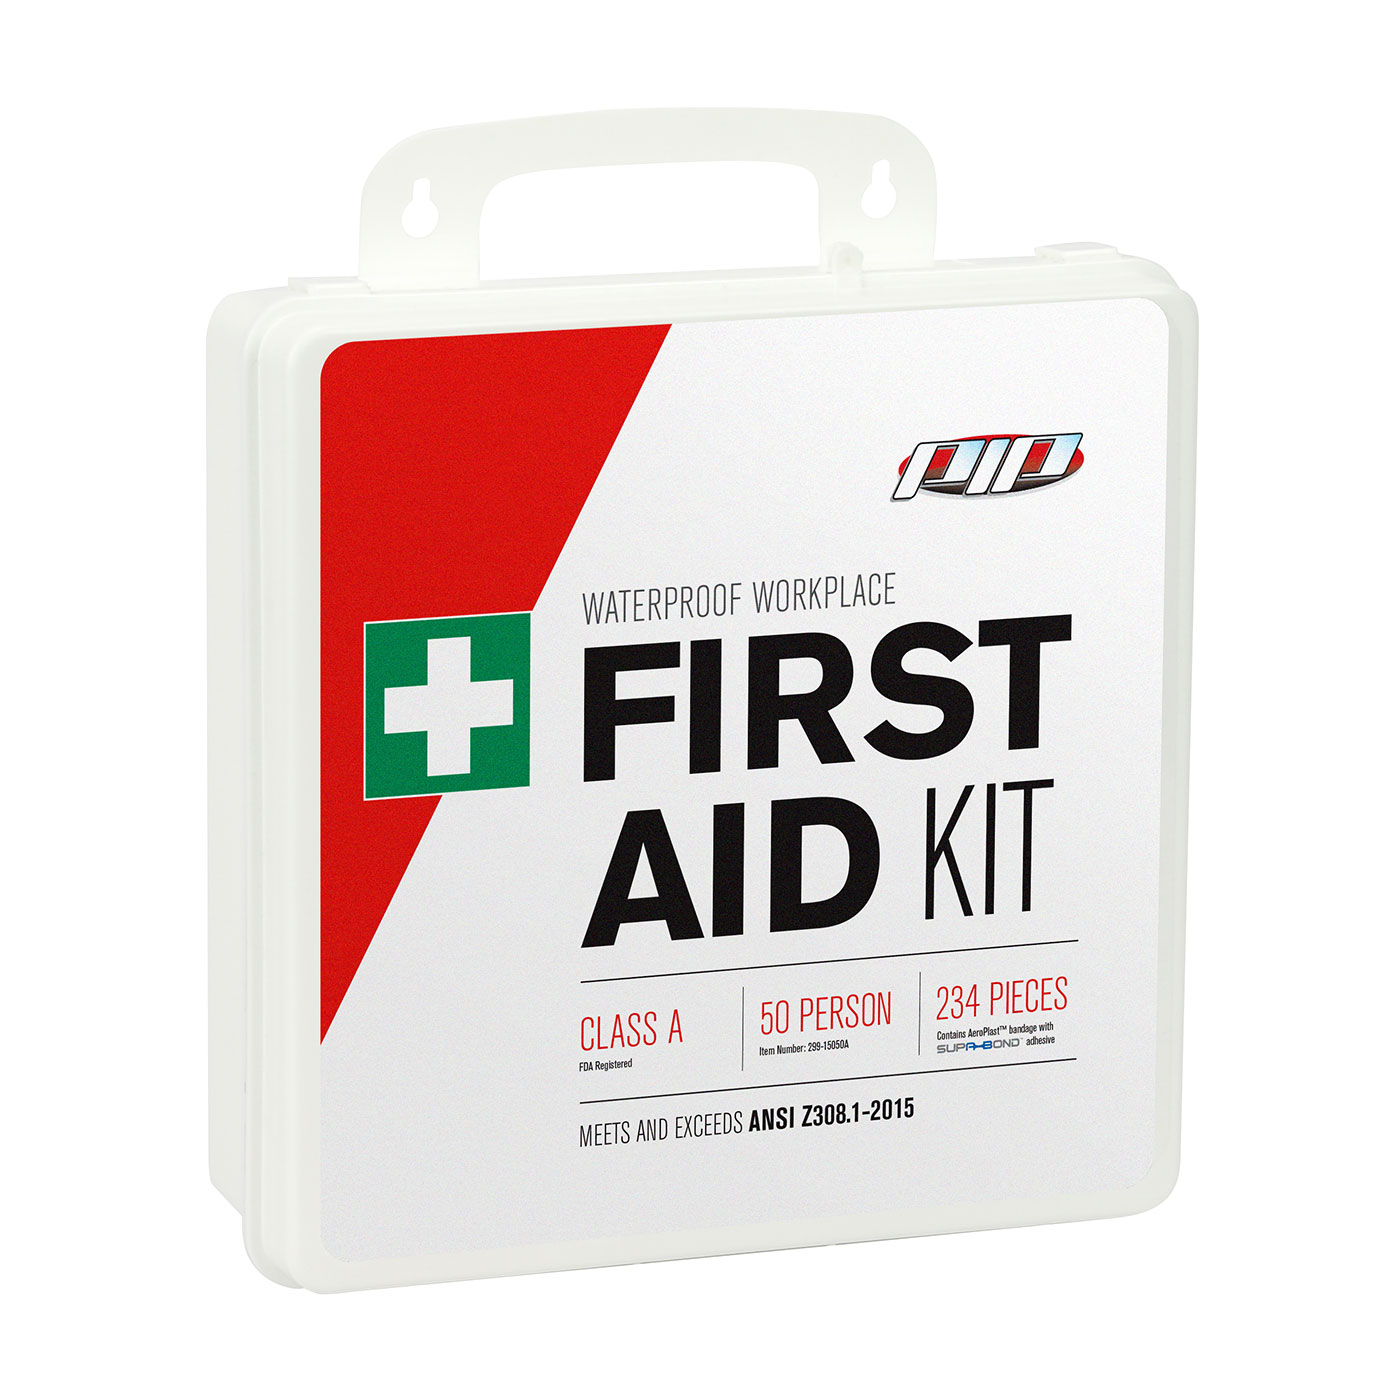 ANSI Class A Waterproof First Aid Kit - 50 Person, White, KIT